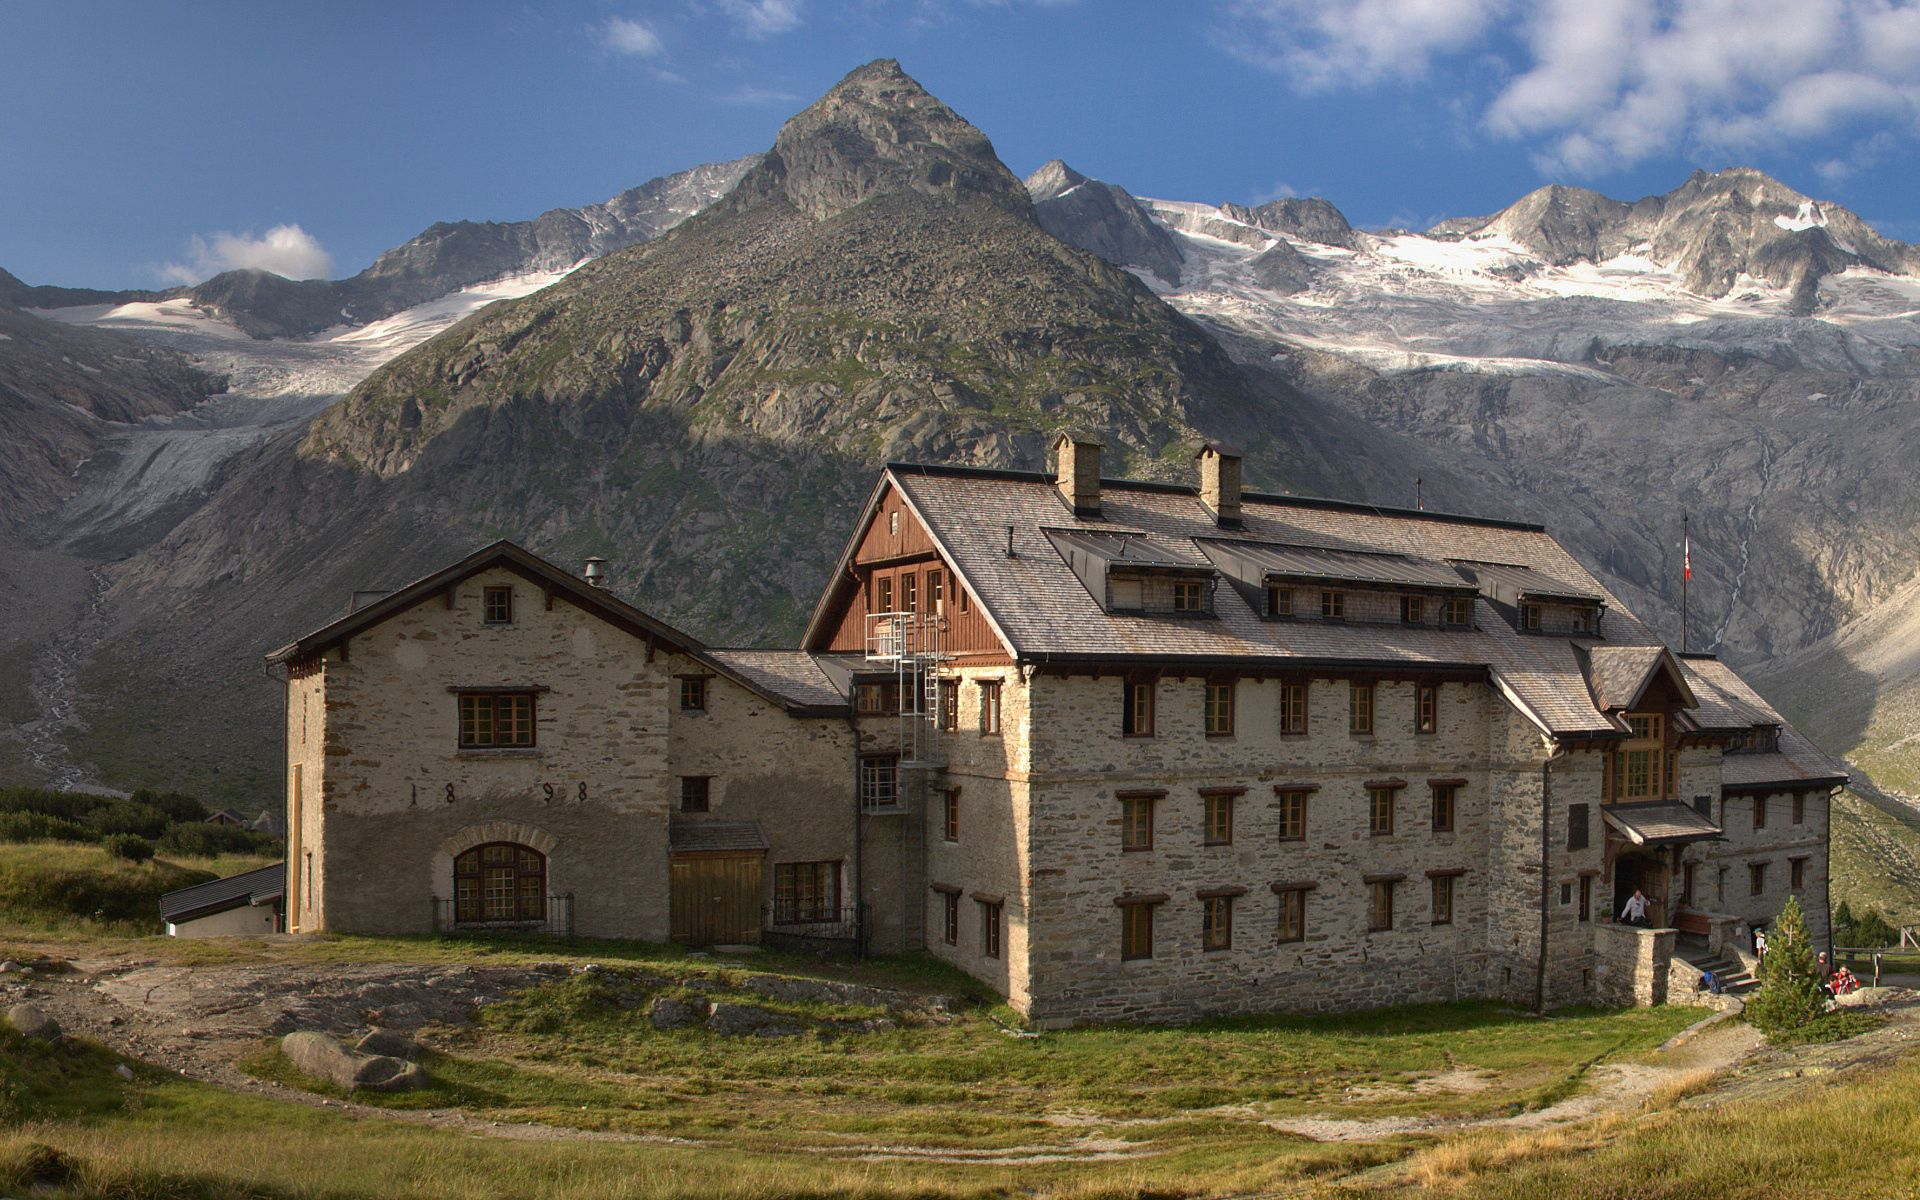 139448 download wallpaper Nature, House, Hotel, Construction, Building, Noon, People, Mountains screensavers and pictures for free